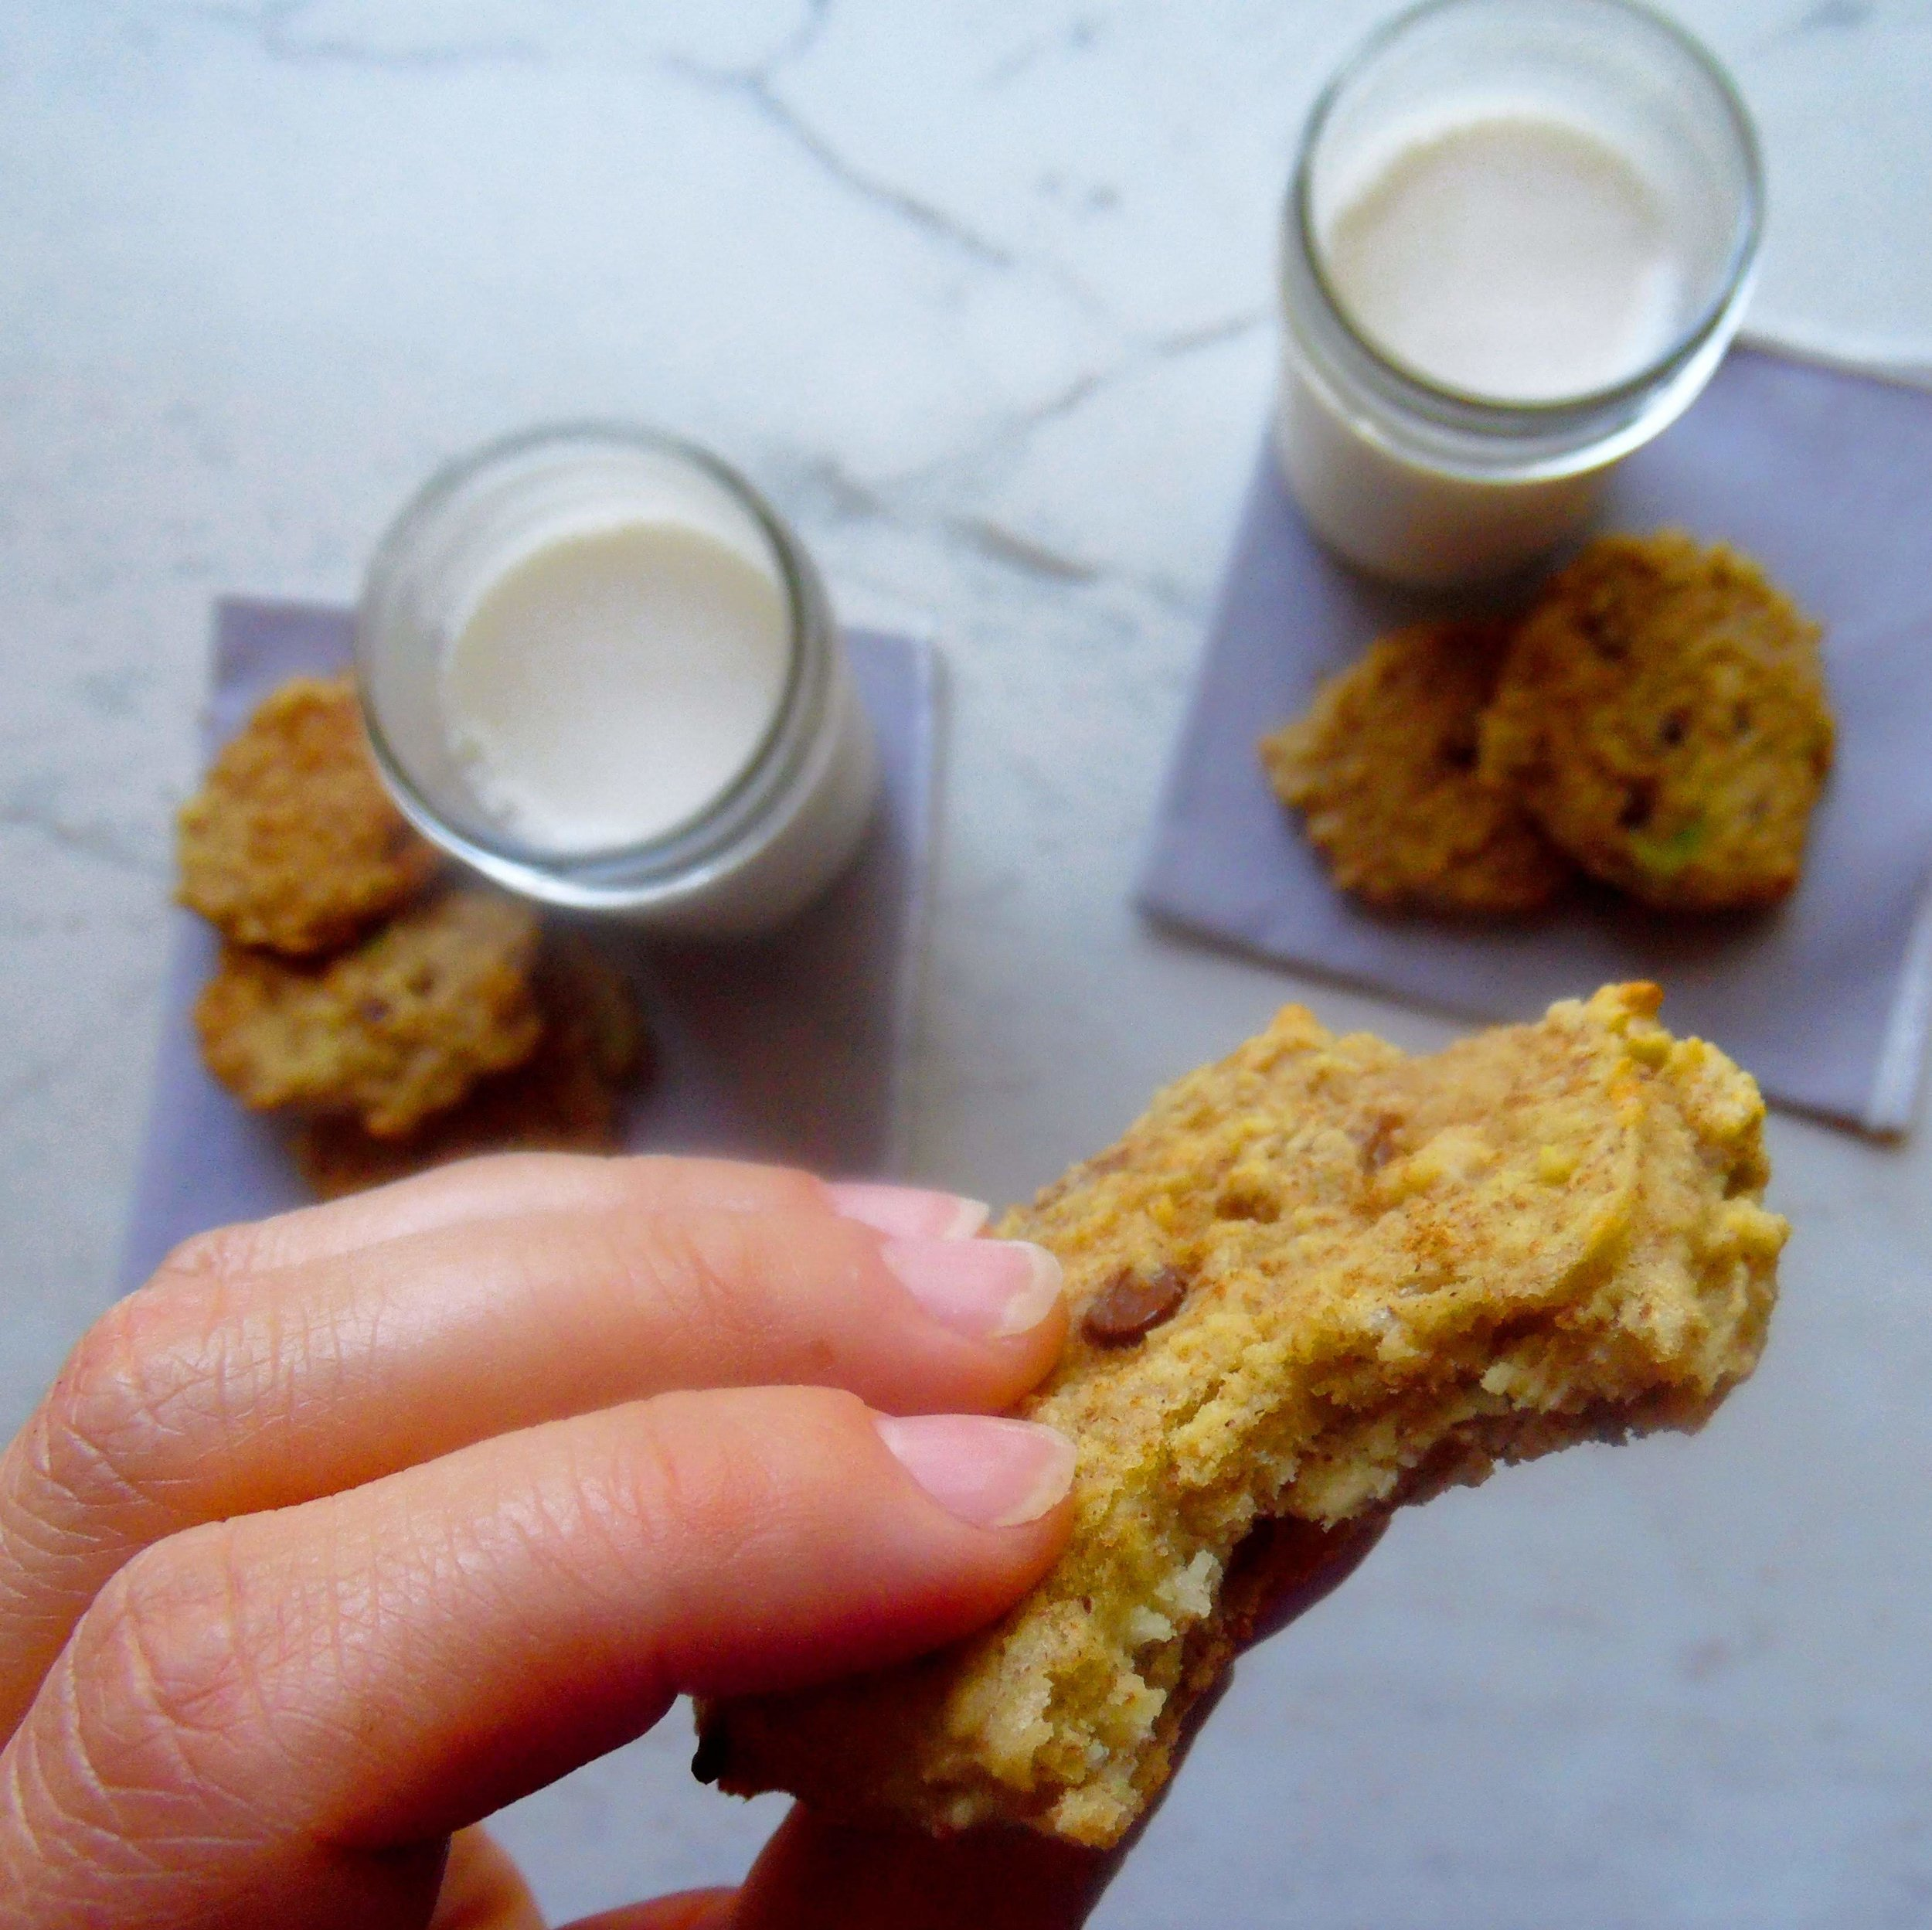 These breakfast cookies are easy to make and so yummy. They are paleo, gluten free, and dairy free.